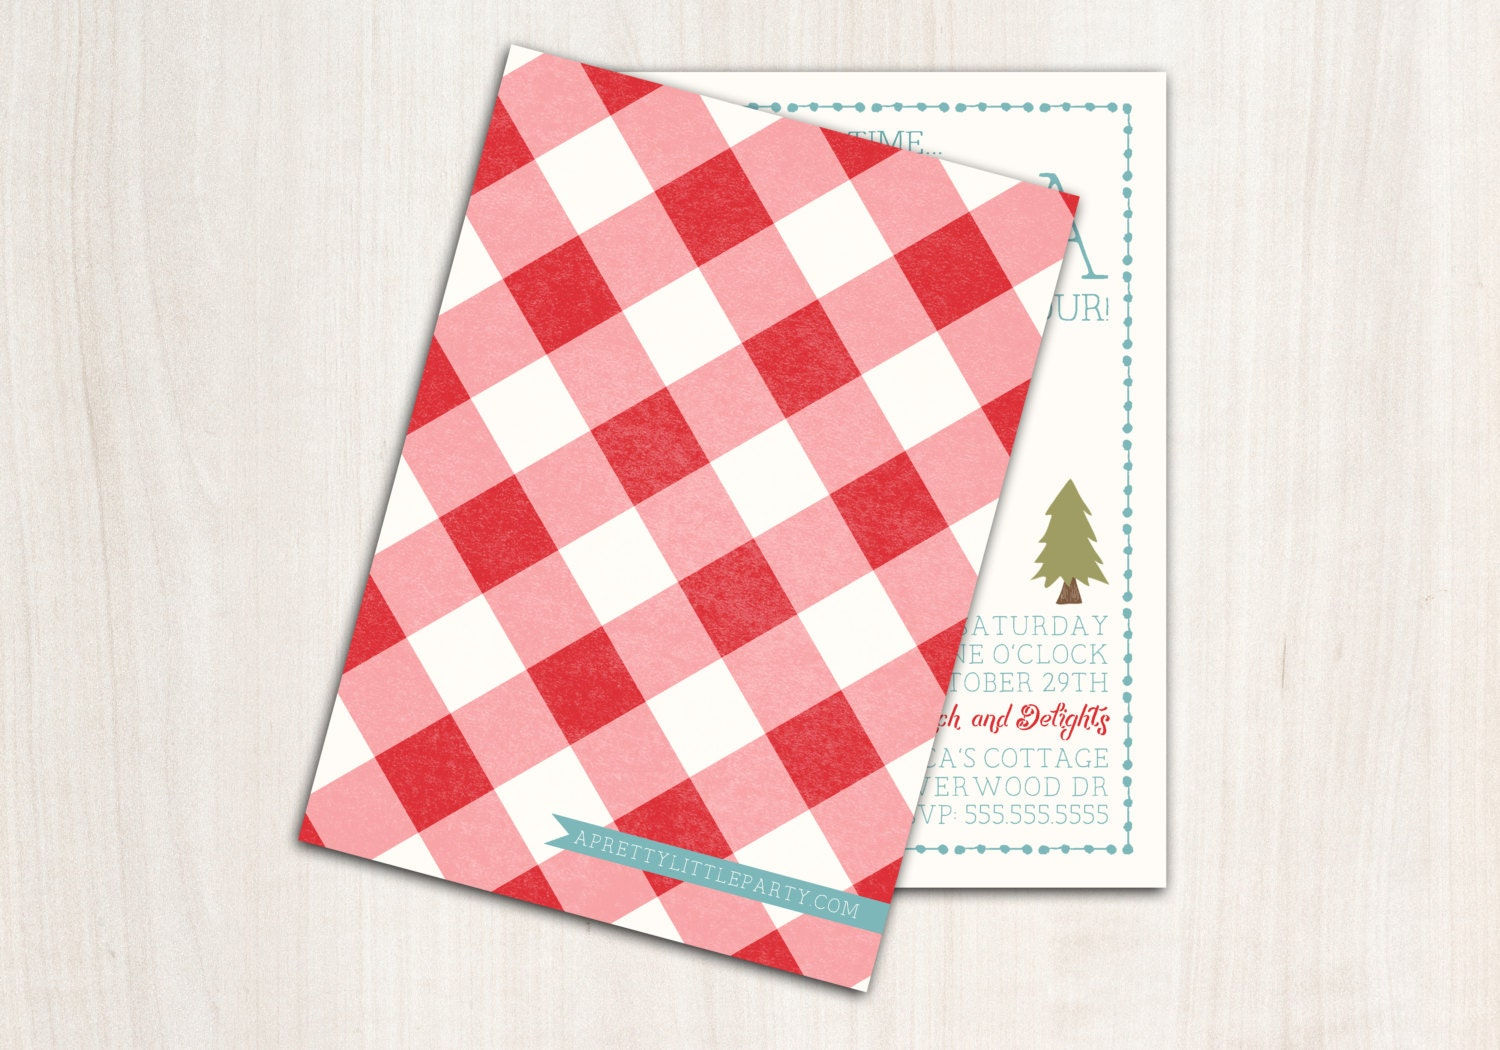 Little Red Riding Hood Invitation - Forest party - Red Riding Hood Party Supplies